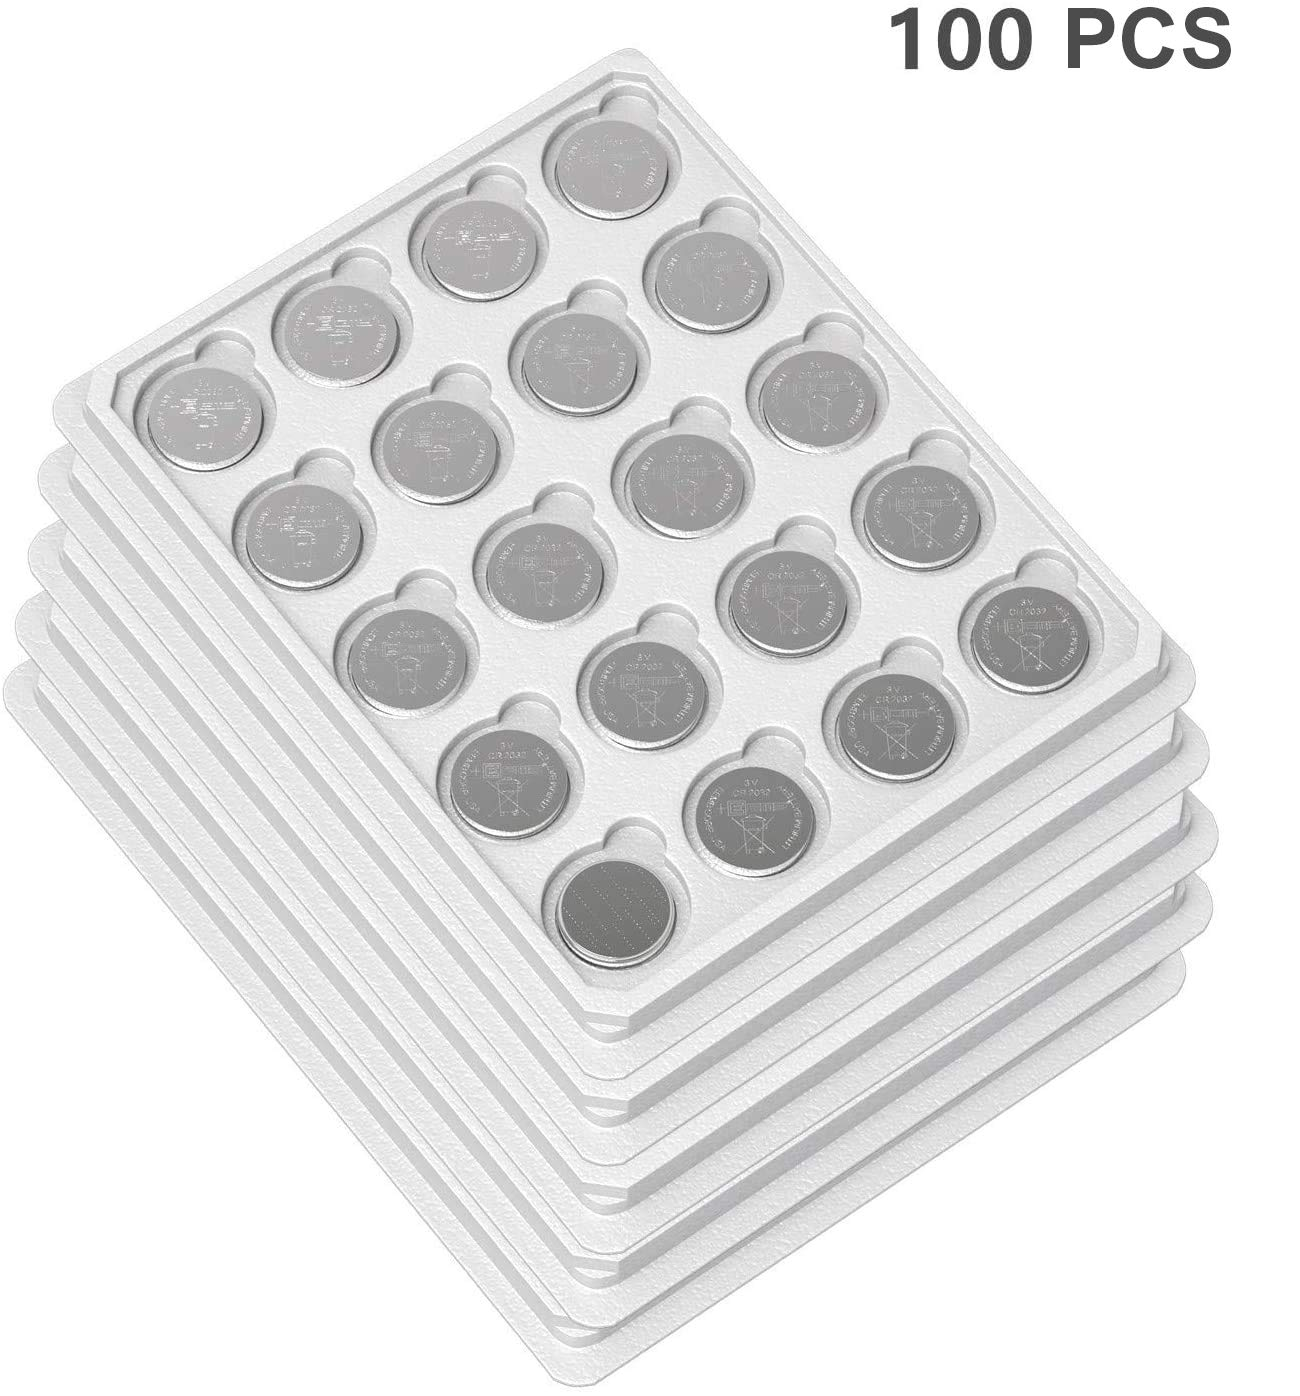 EEMB CR2032 Battery- Button Coin Cell Lithium Battery 3 V 210 mAh Replacement Battery Perfect UL Certified for Watches, Car Key Remotes, Alarm Clock Toys (100PCS)